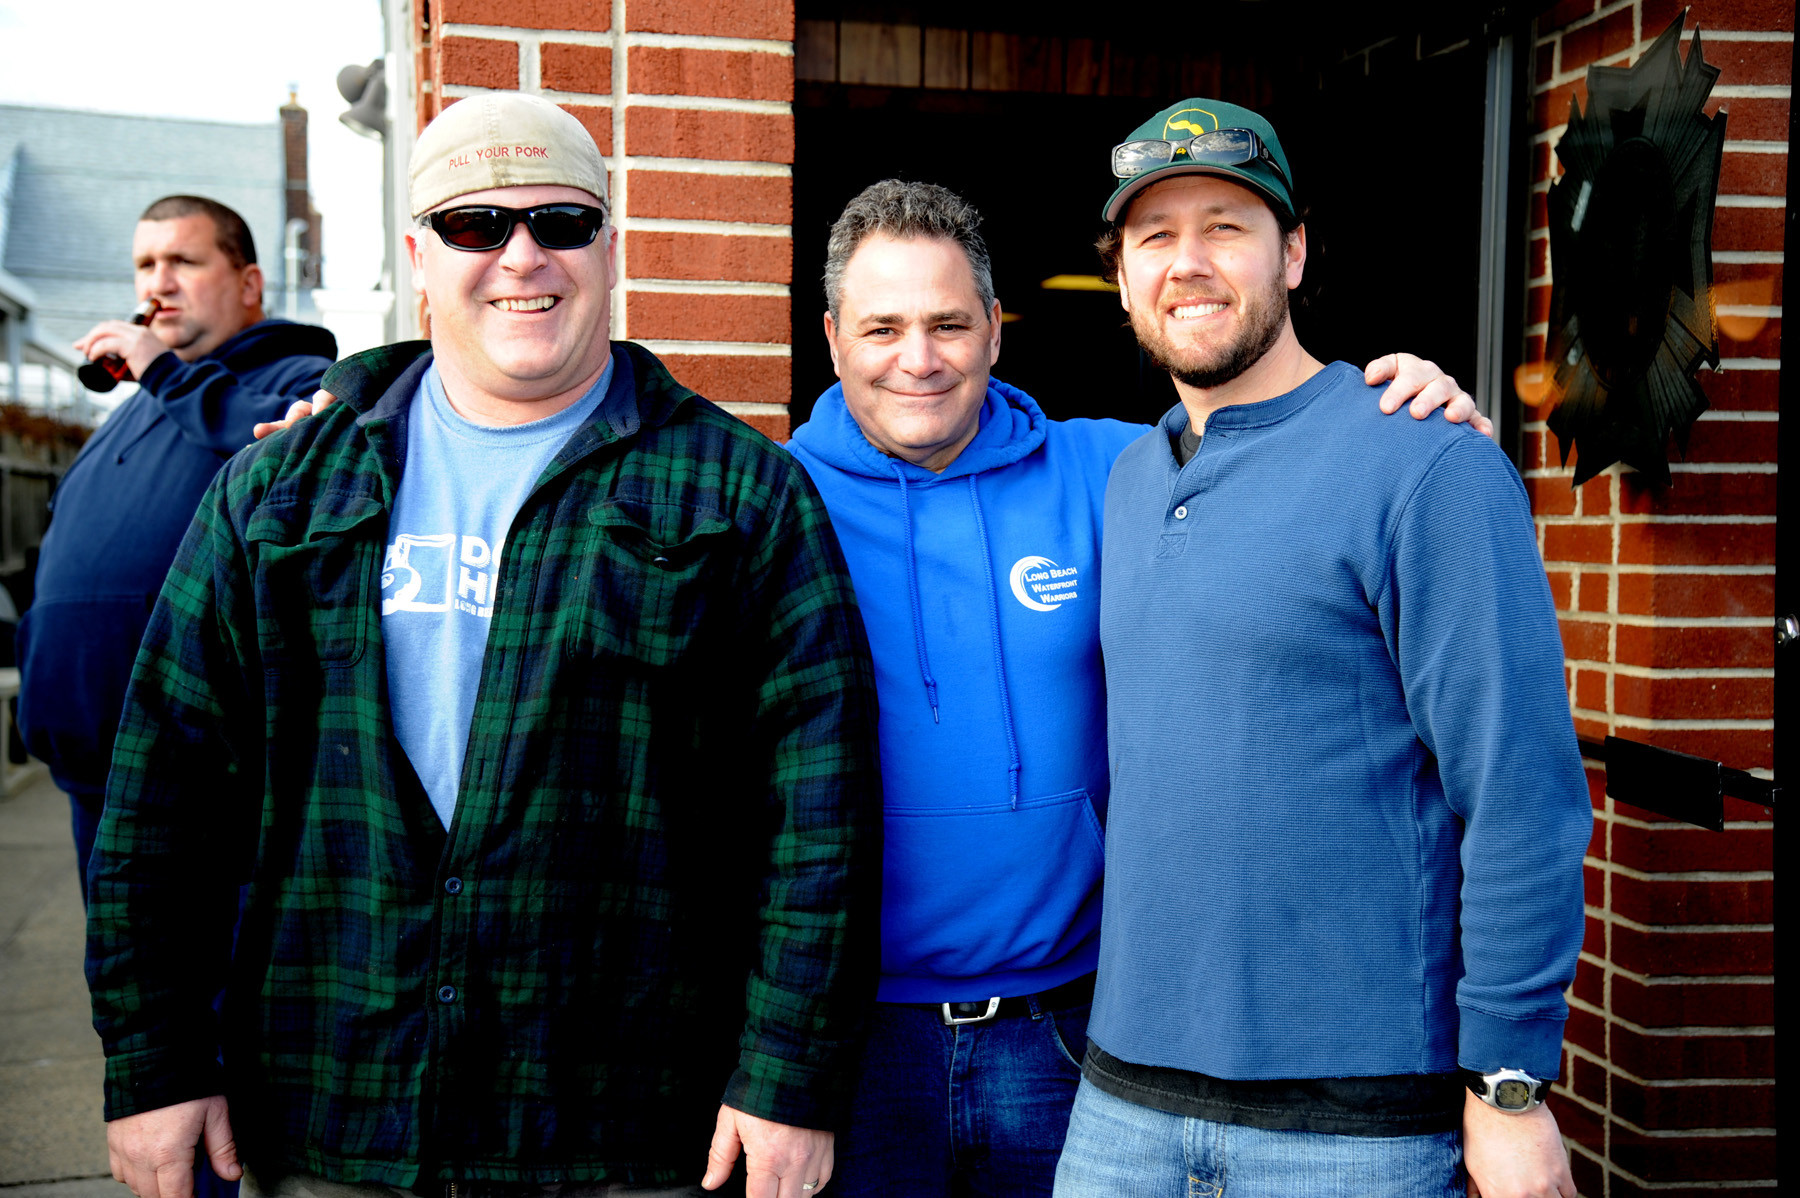 Event organizers Sean Sullivan, left, and Billy Kupferman, far right, were joined by local radio host Howie Appel, and said that they were thrilled with the fundraiser�s turnout.